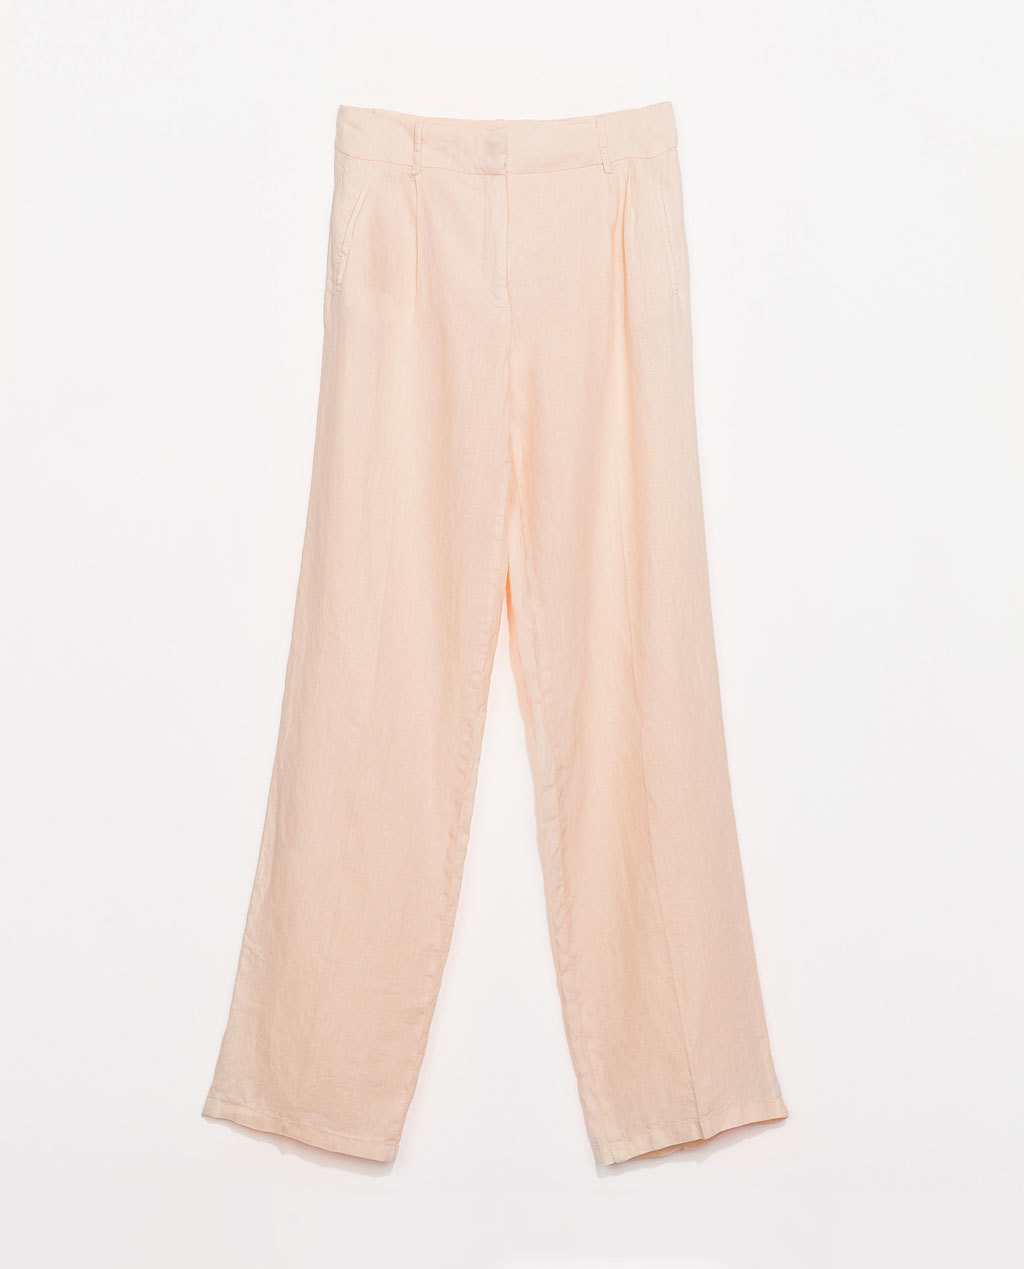 Linen Trousers With Front Pleat - length: standard; pattern: plain; waist: mid/regular rise; predominant colour: nude; occasions: casual, occasion, holiday, creative work; fibres: linen - 100%; texture group: linen; fit: wide leg; pattern type: fabric; style: standard; season: s/s 2014